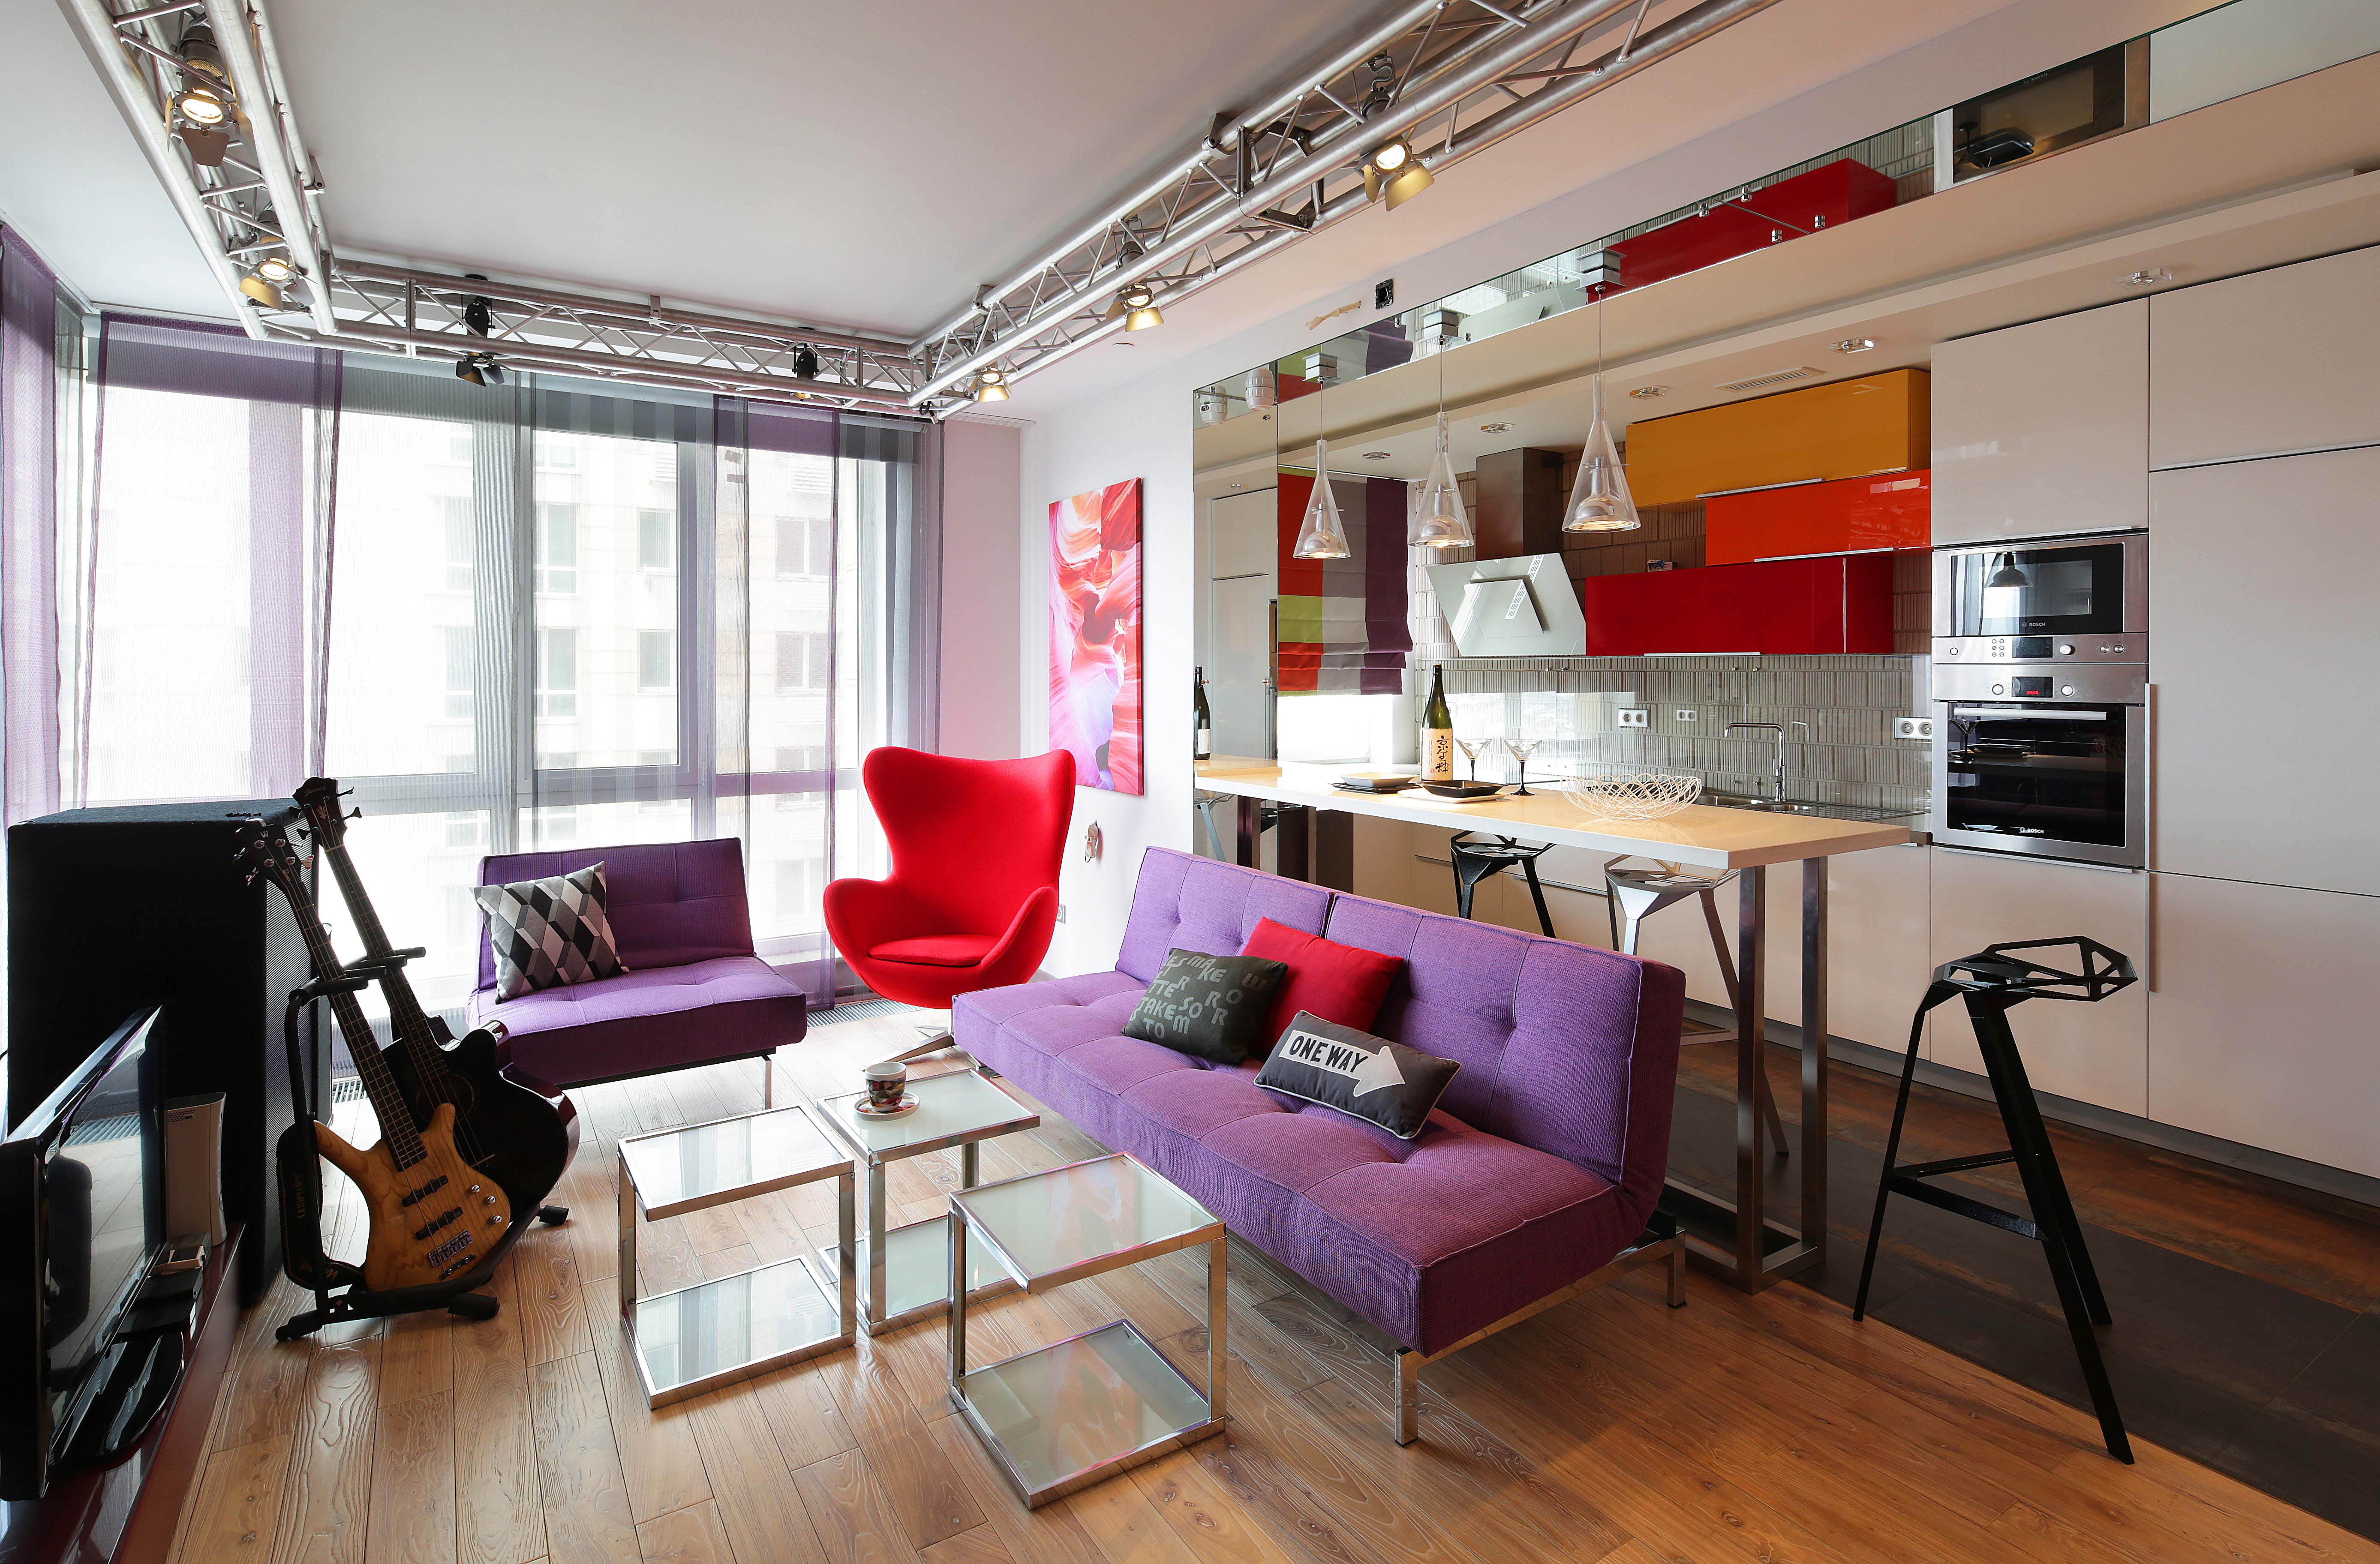 Eclectic Design eclectic interior design style